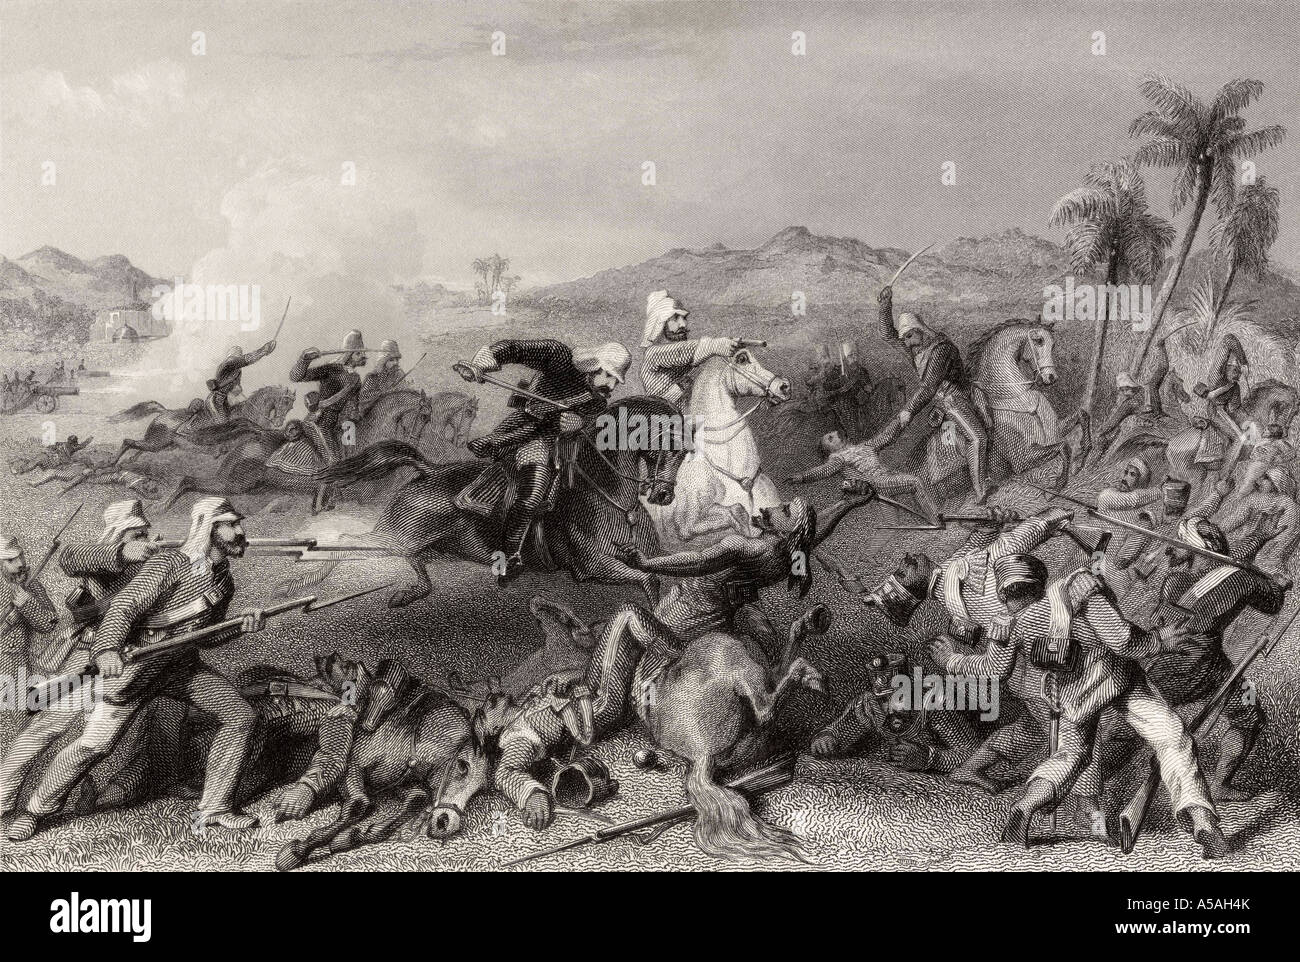 Attack on the Sealkote mutineers by General Nicholson's irregular cavalry - Stock Image